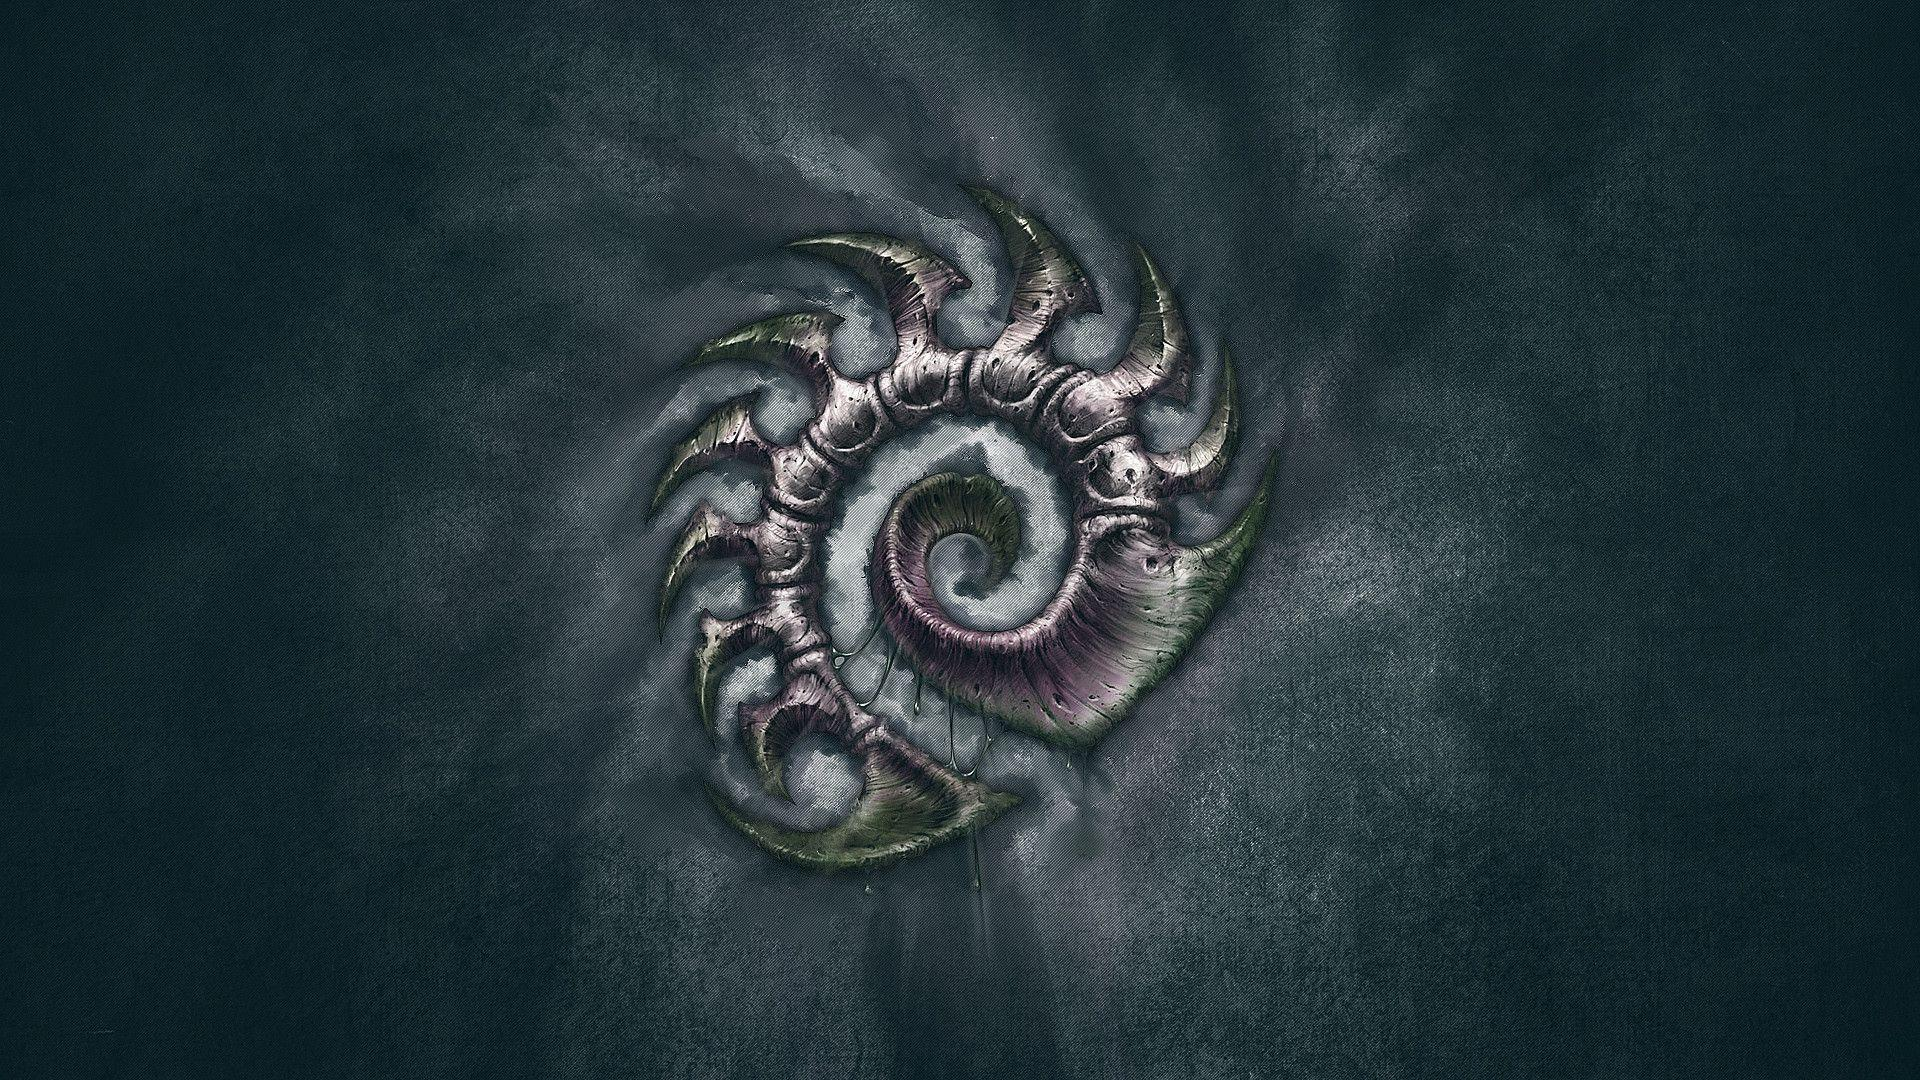 zerg starcraft wallpaper 2560x1440 - photo #31